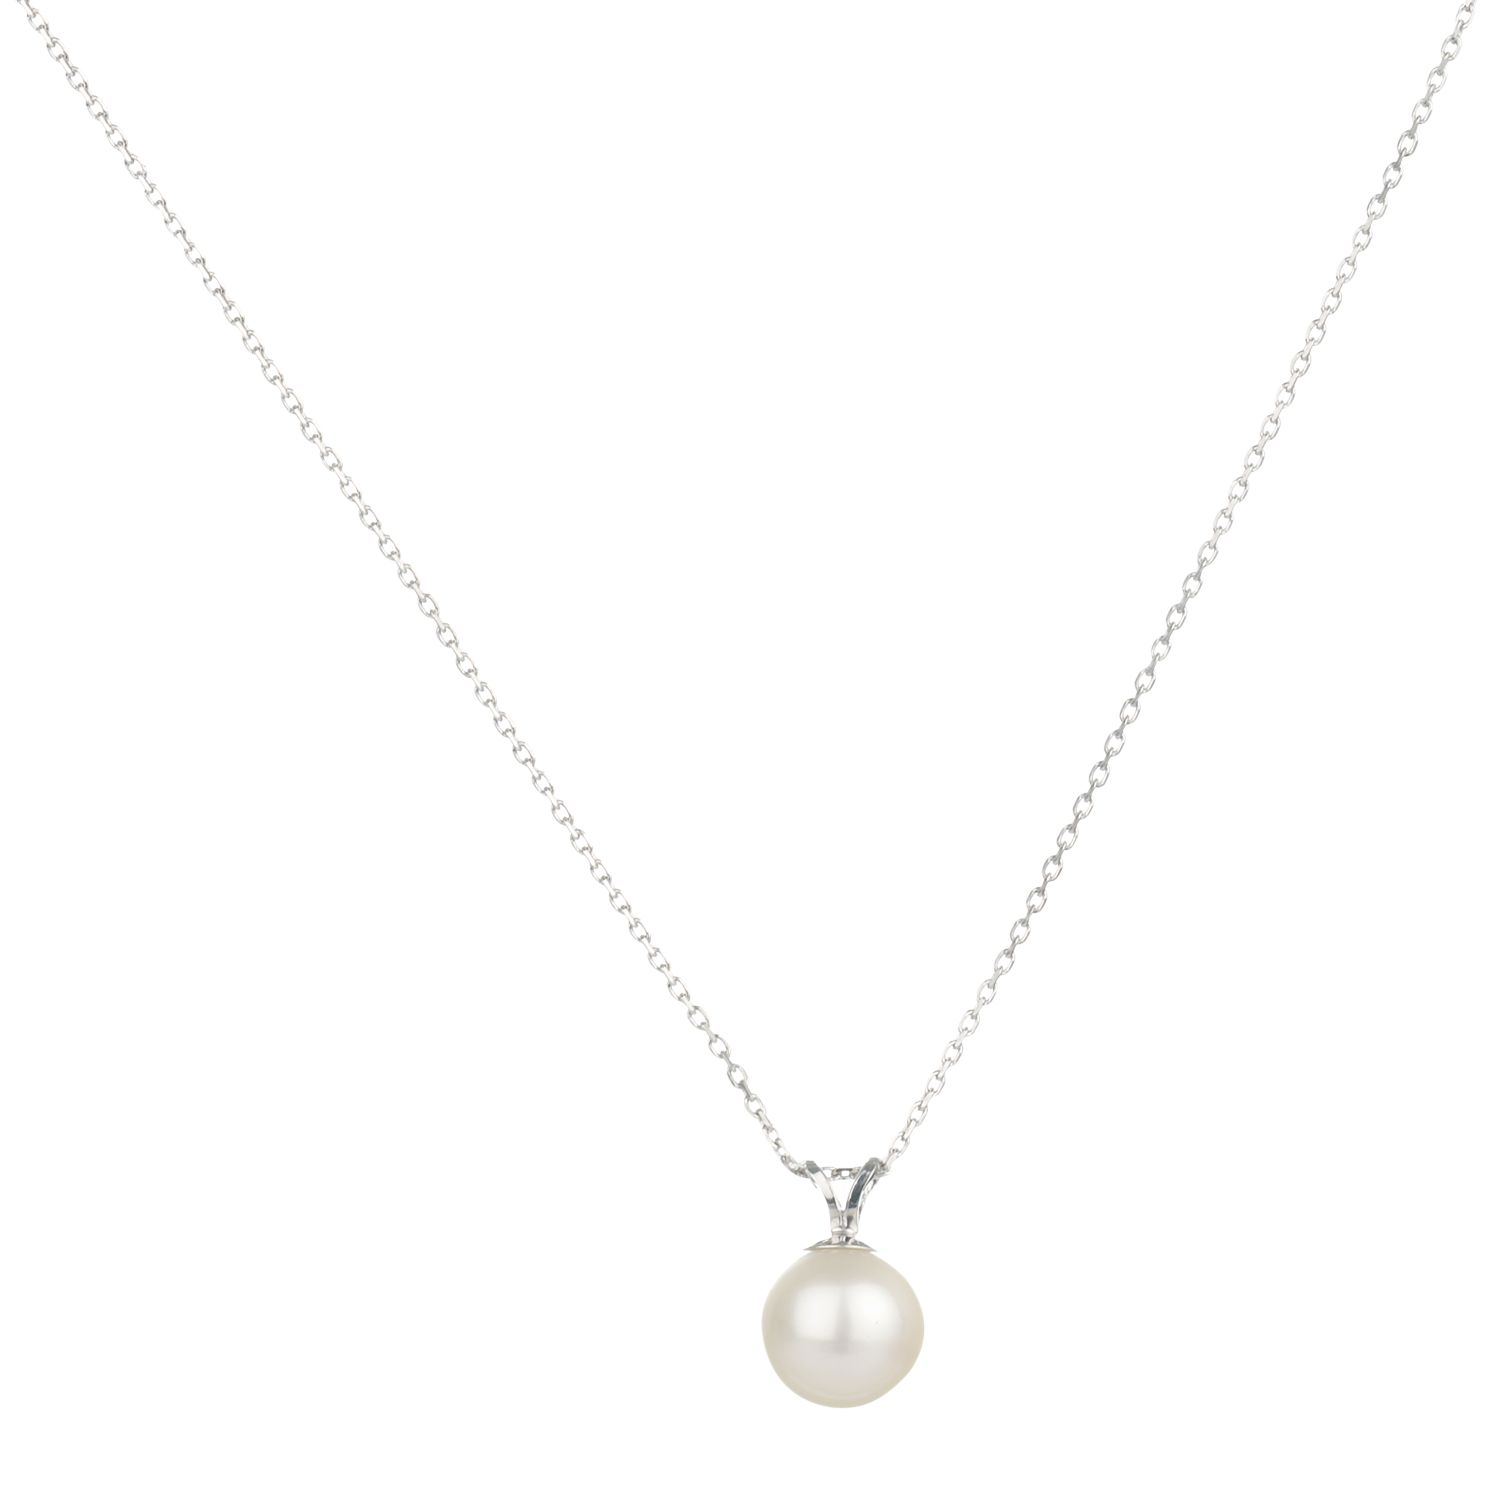 9ct White Gold White Fresh Water Pearl Pendant Necklace